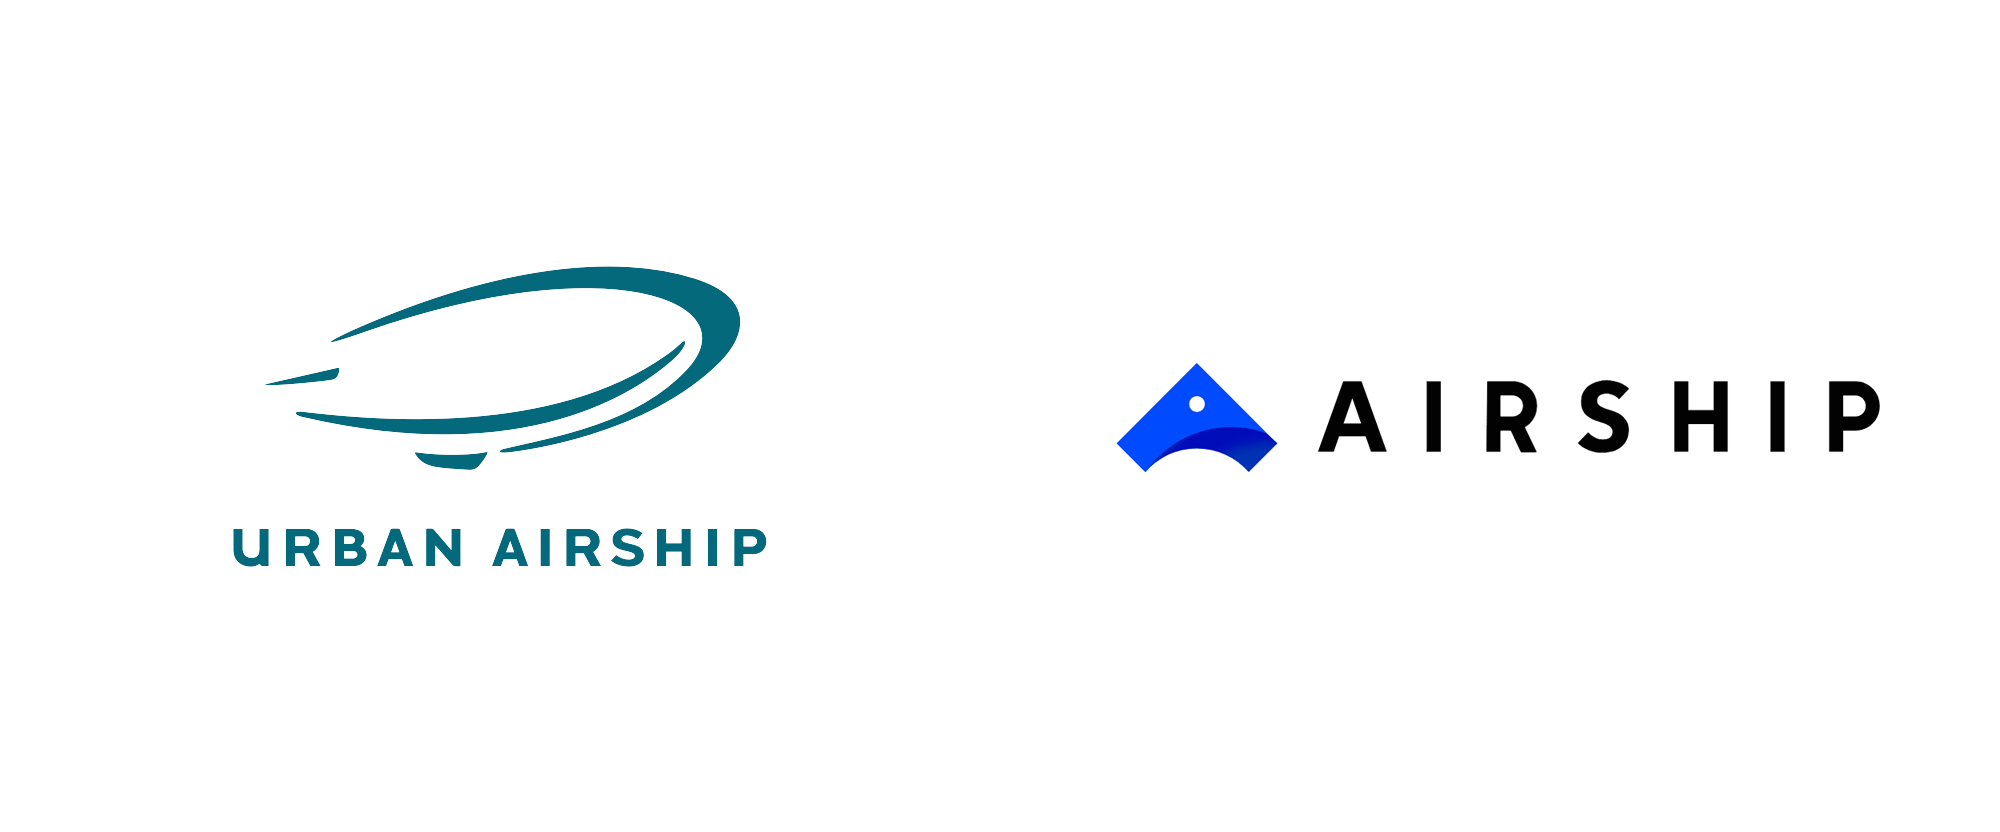 New Name and Logo for Airship